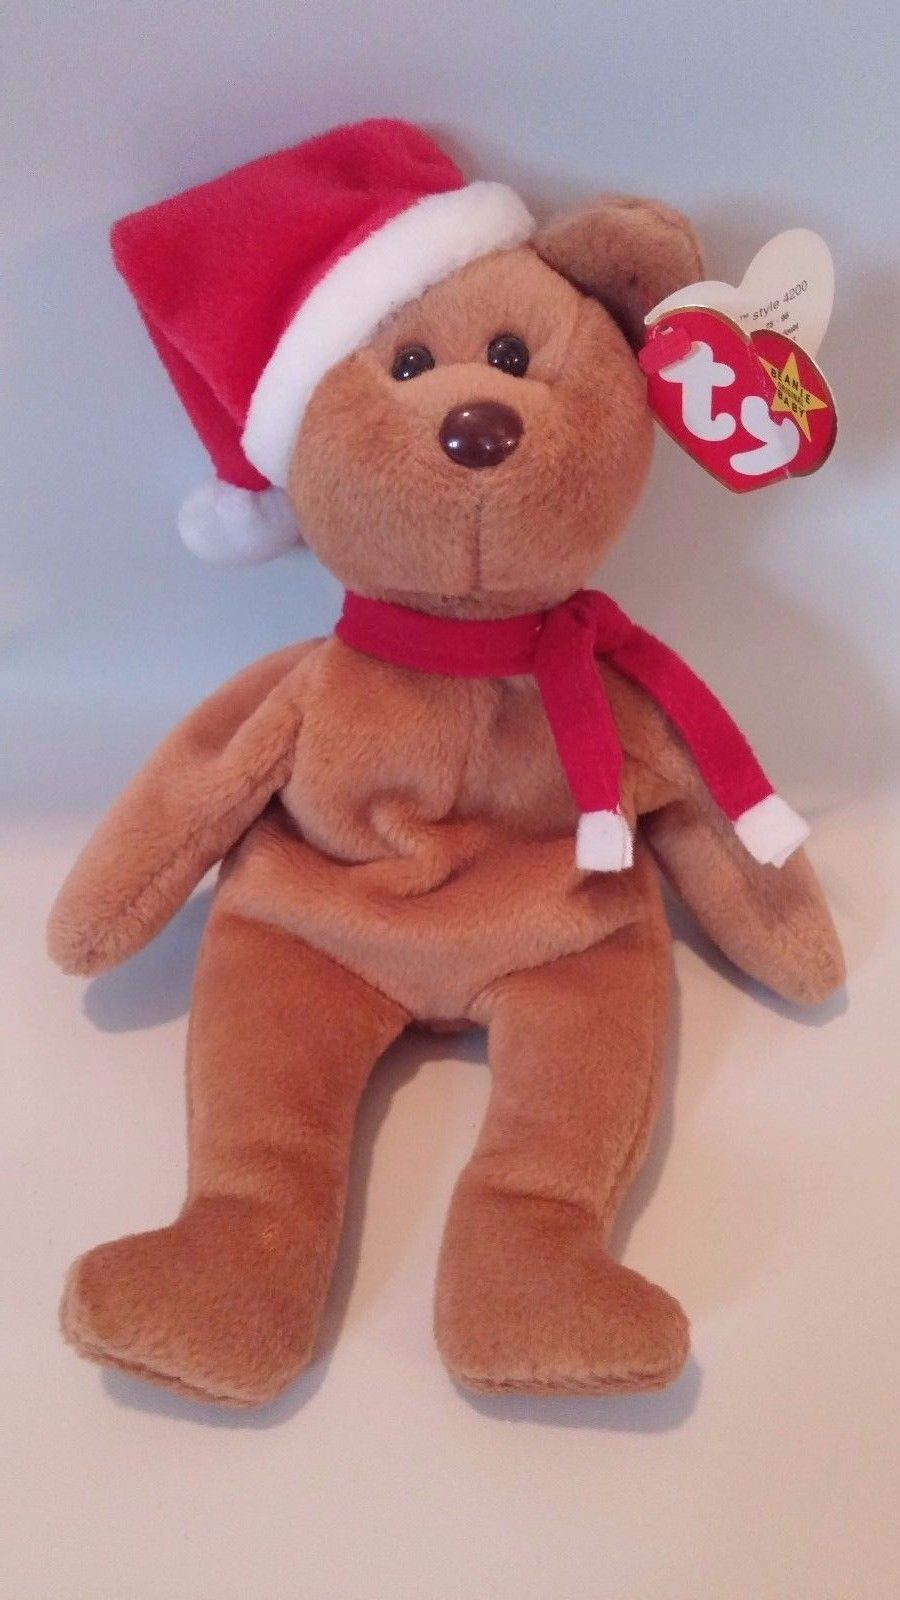 The 20 Expensive Collectible Beanie Babies Will Make You Rich - Most Valuable  Beanie Babies 11268dfe6fb